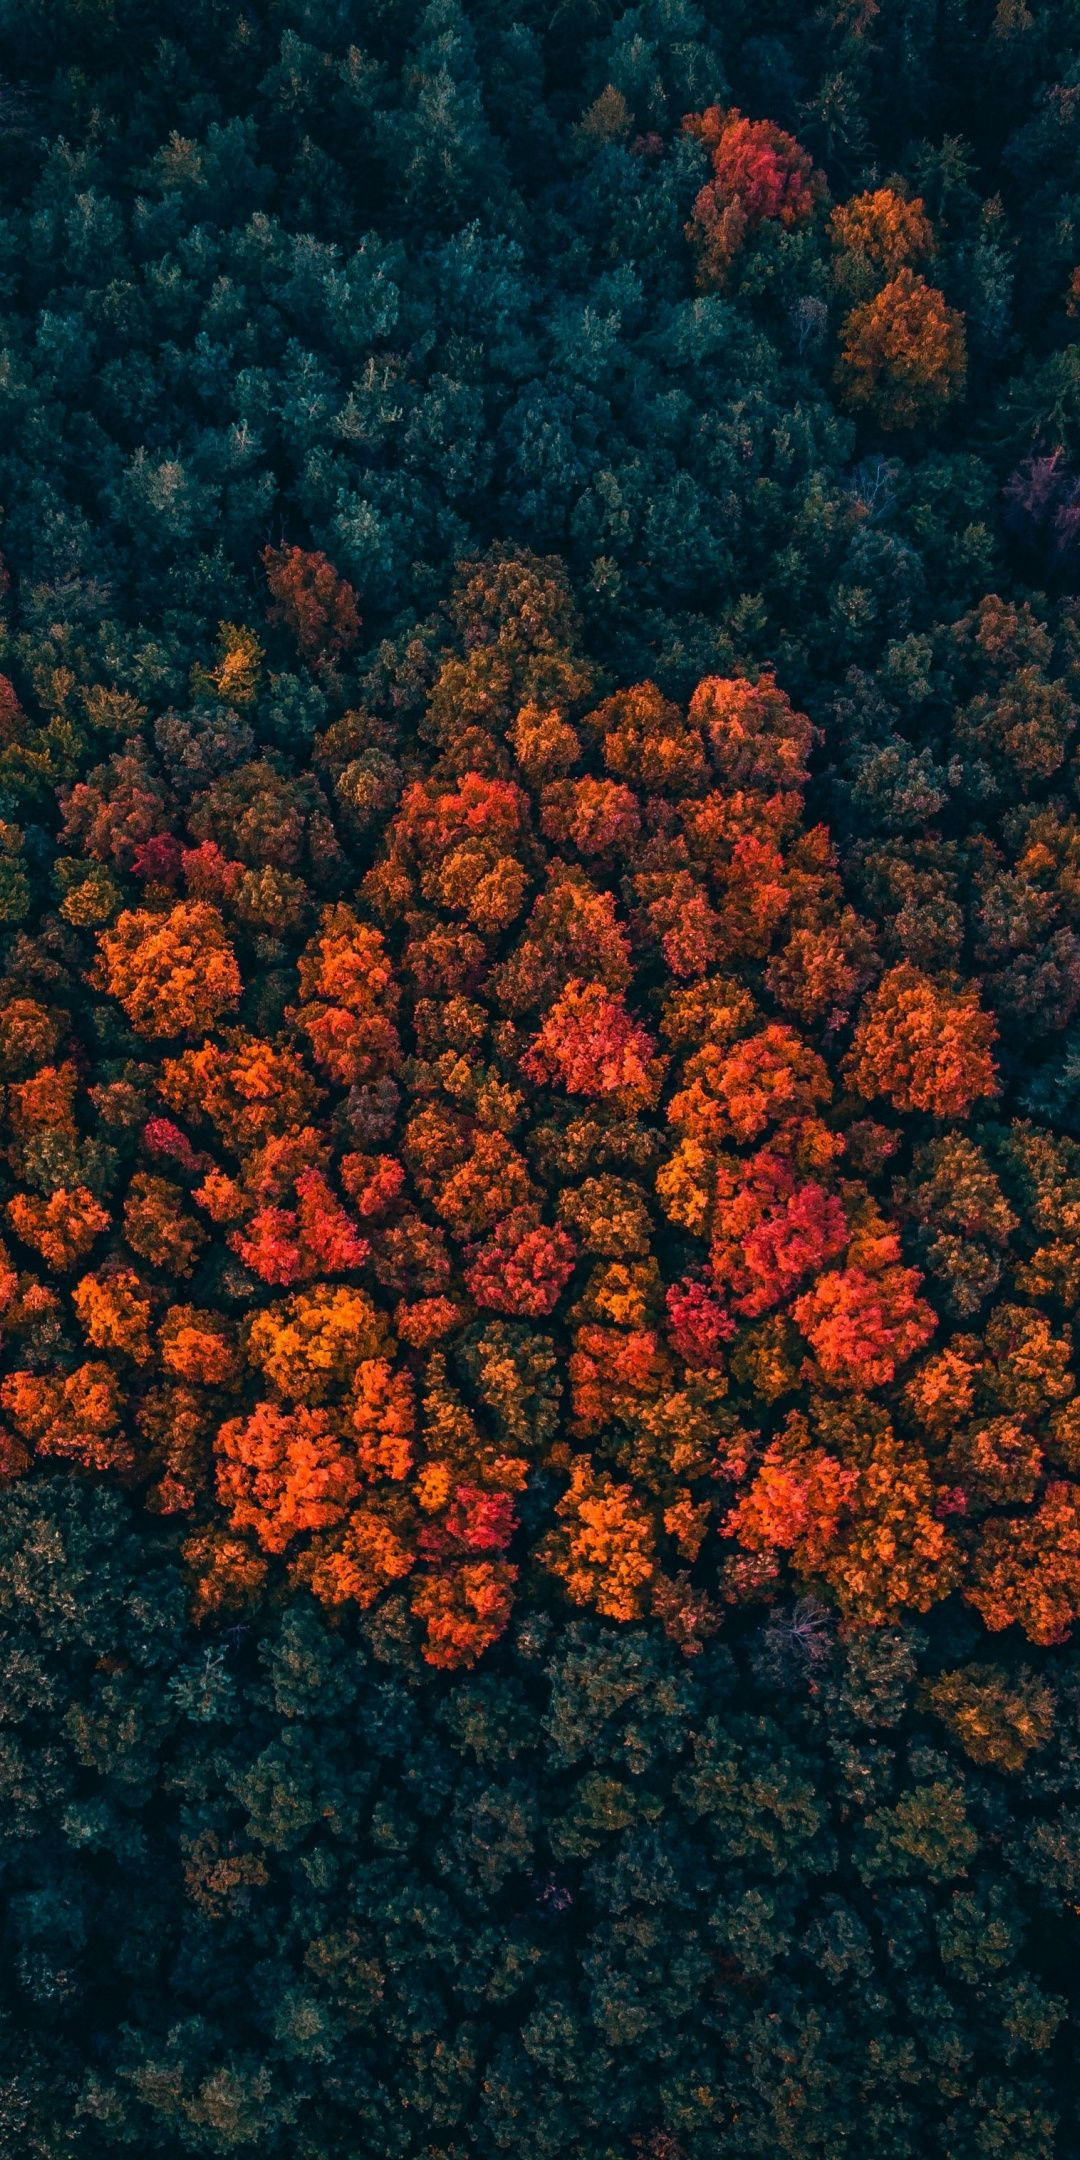 Trees Peak Forest Trees Aerial View 1080x2160 Wallpaper View Wallpaper Nature Photography Photography Wallpaper Hd wallpaper forest trees aerial view